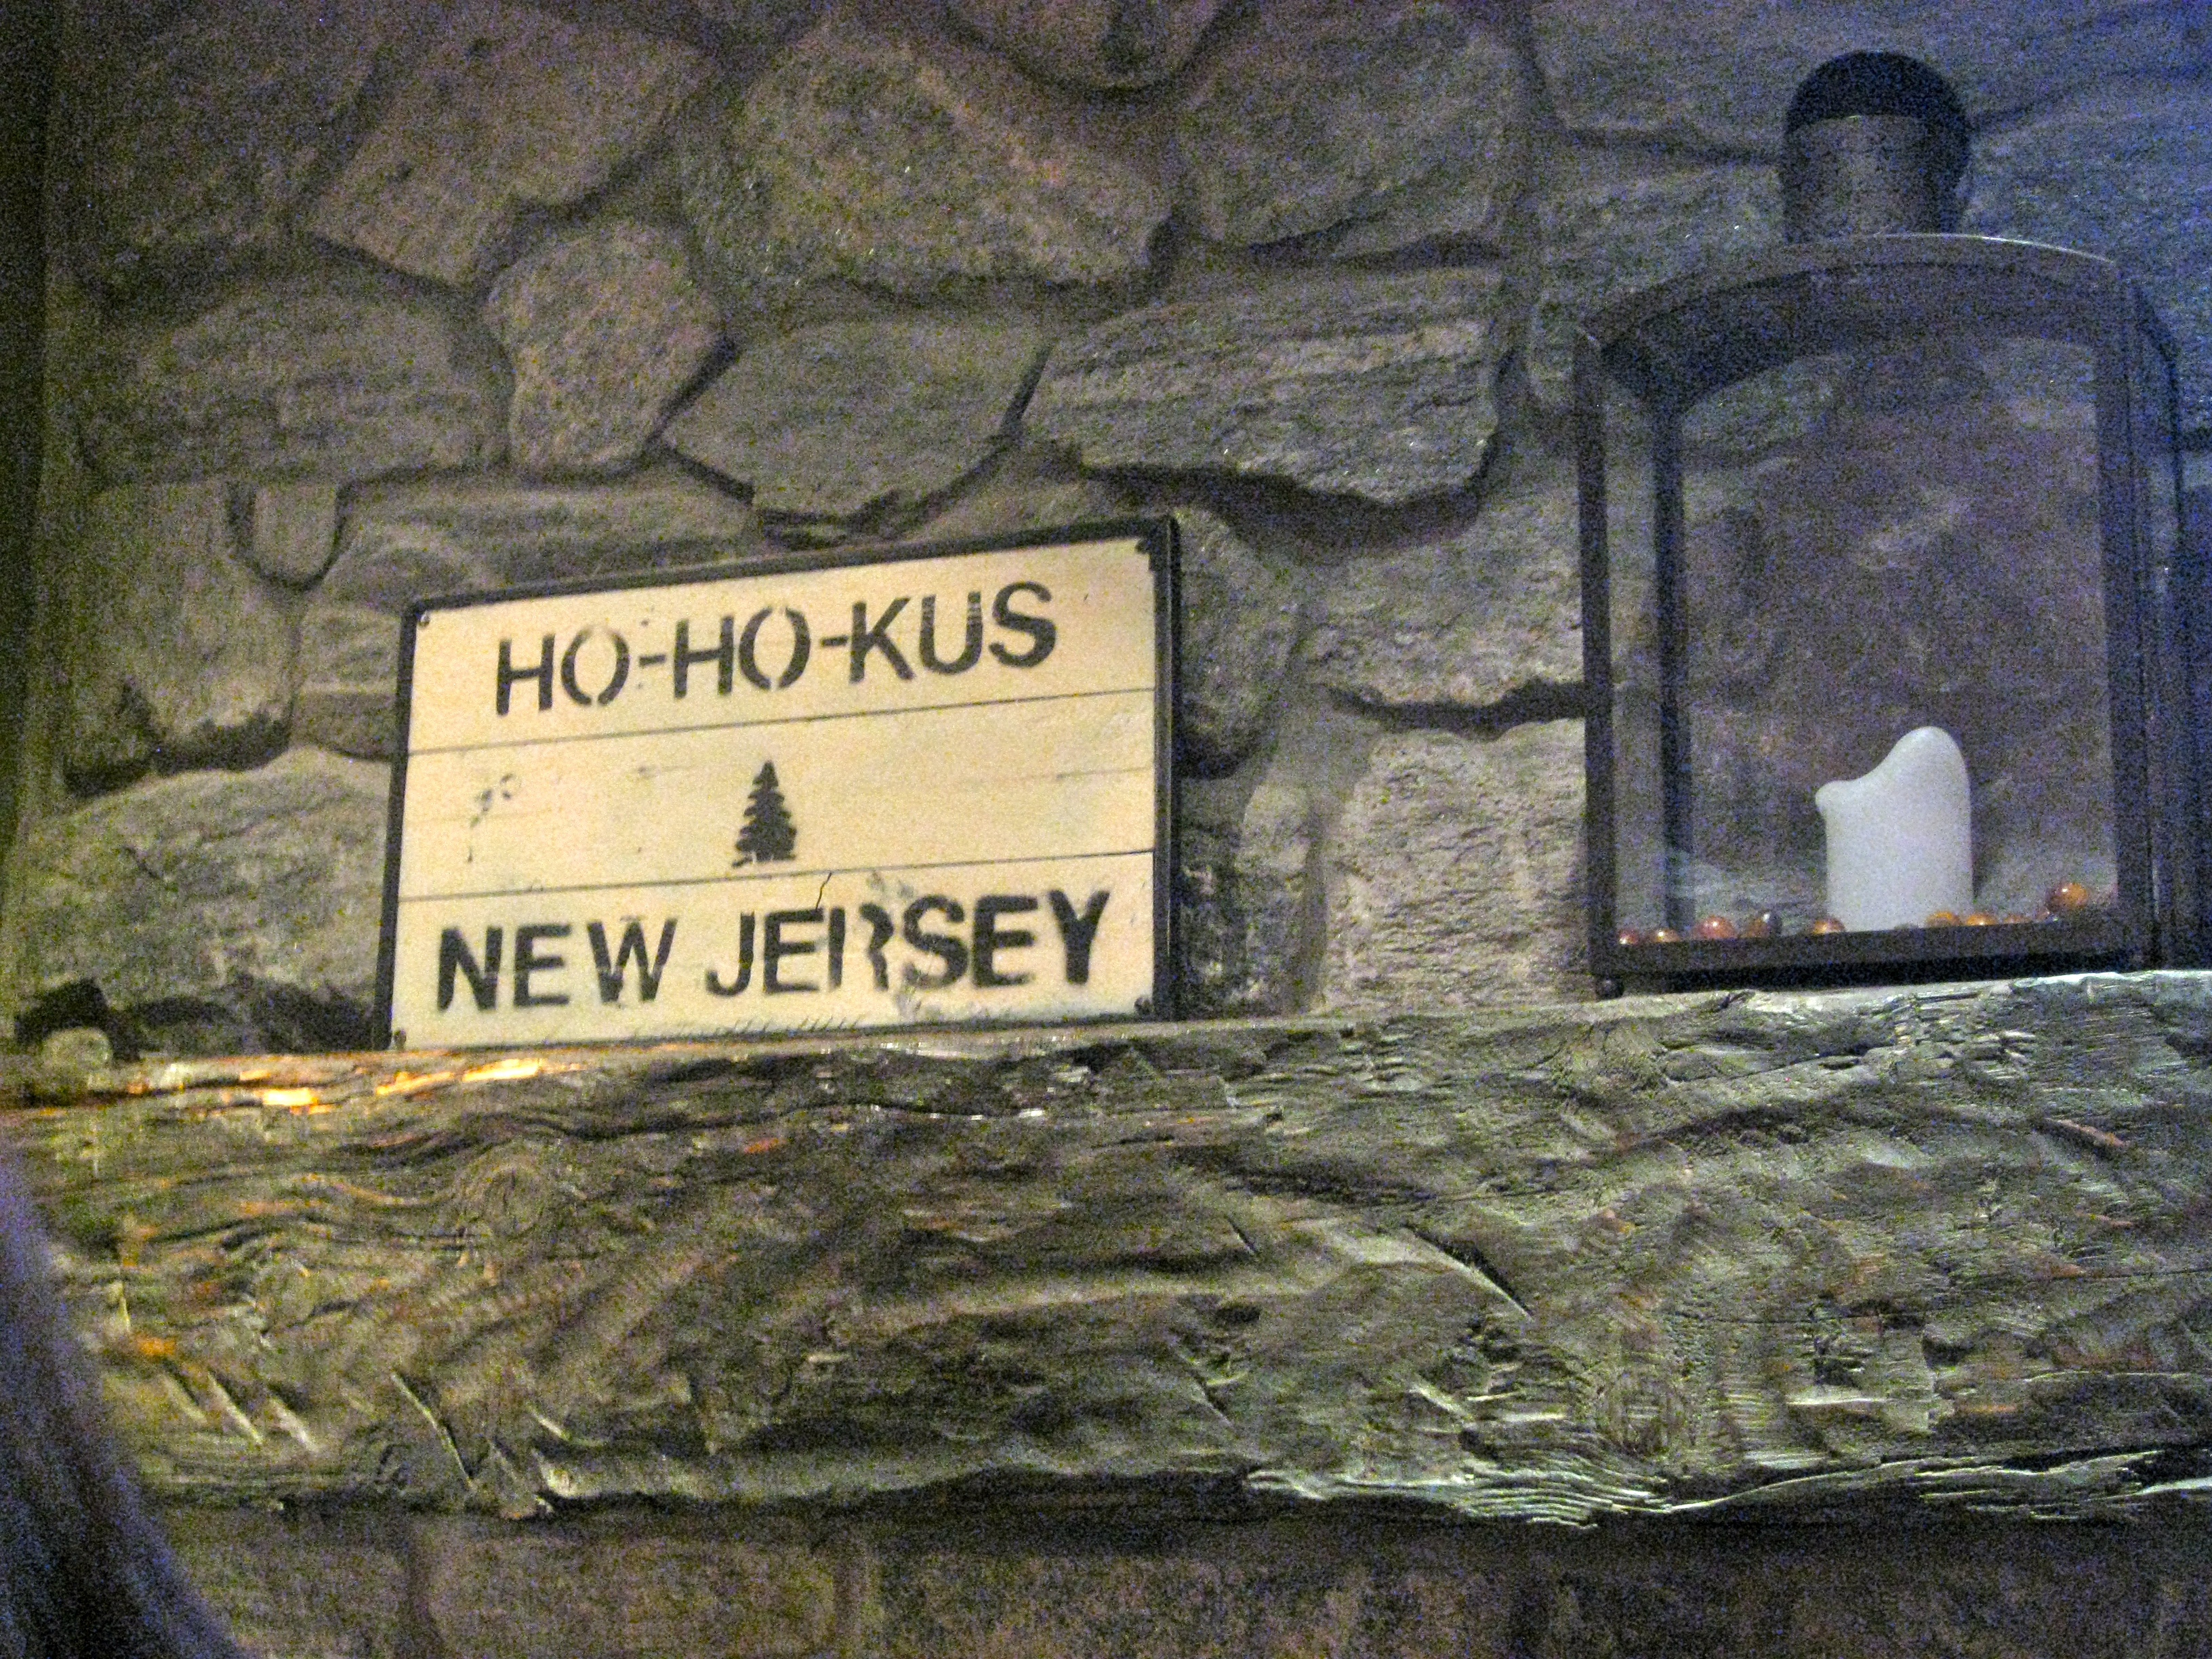 ho ho kus latin singles Ap&p dental is a unique dental practice located in ho-ho-kus, new jersey — the only practice in bergen county with board-certified prosthodontist and board-certified periodontist working together as a team in one practice.